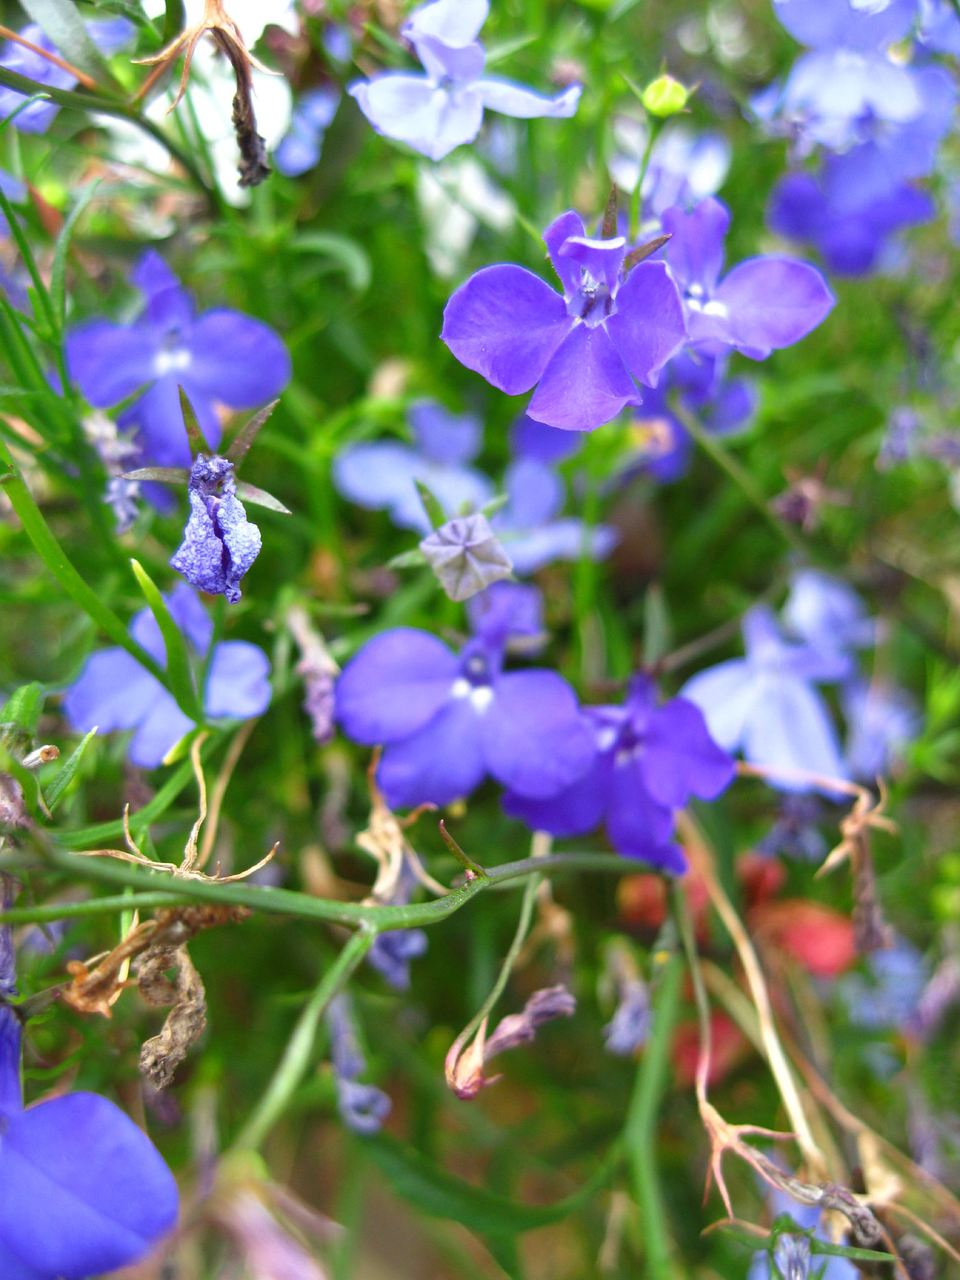 Spiller plant types and what they do the flowers of the lobelia a popular spiller plant paulmcdeecreative commons izmirmasajfo Images